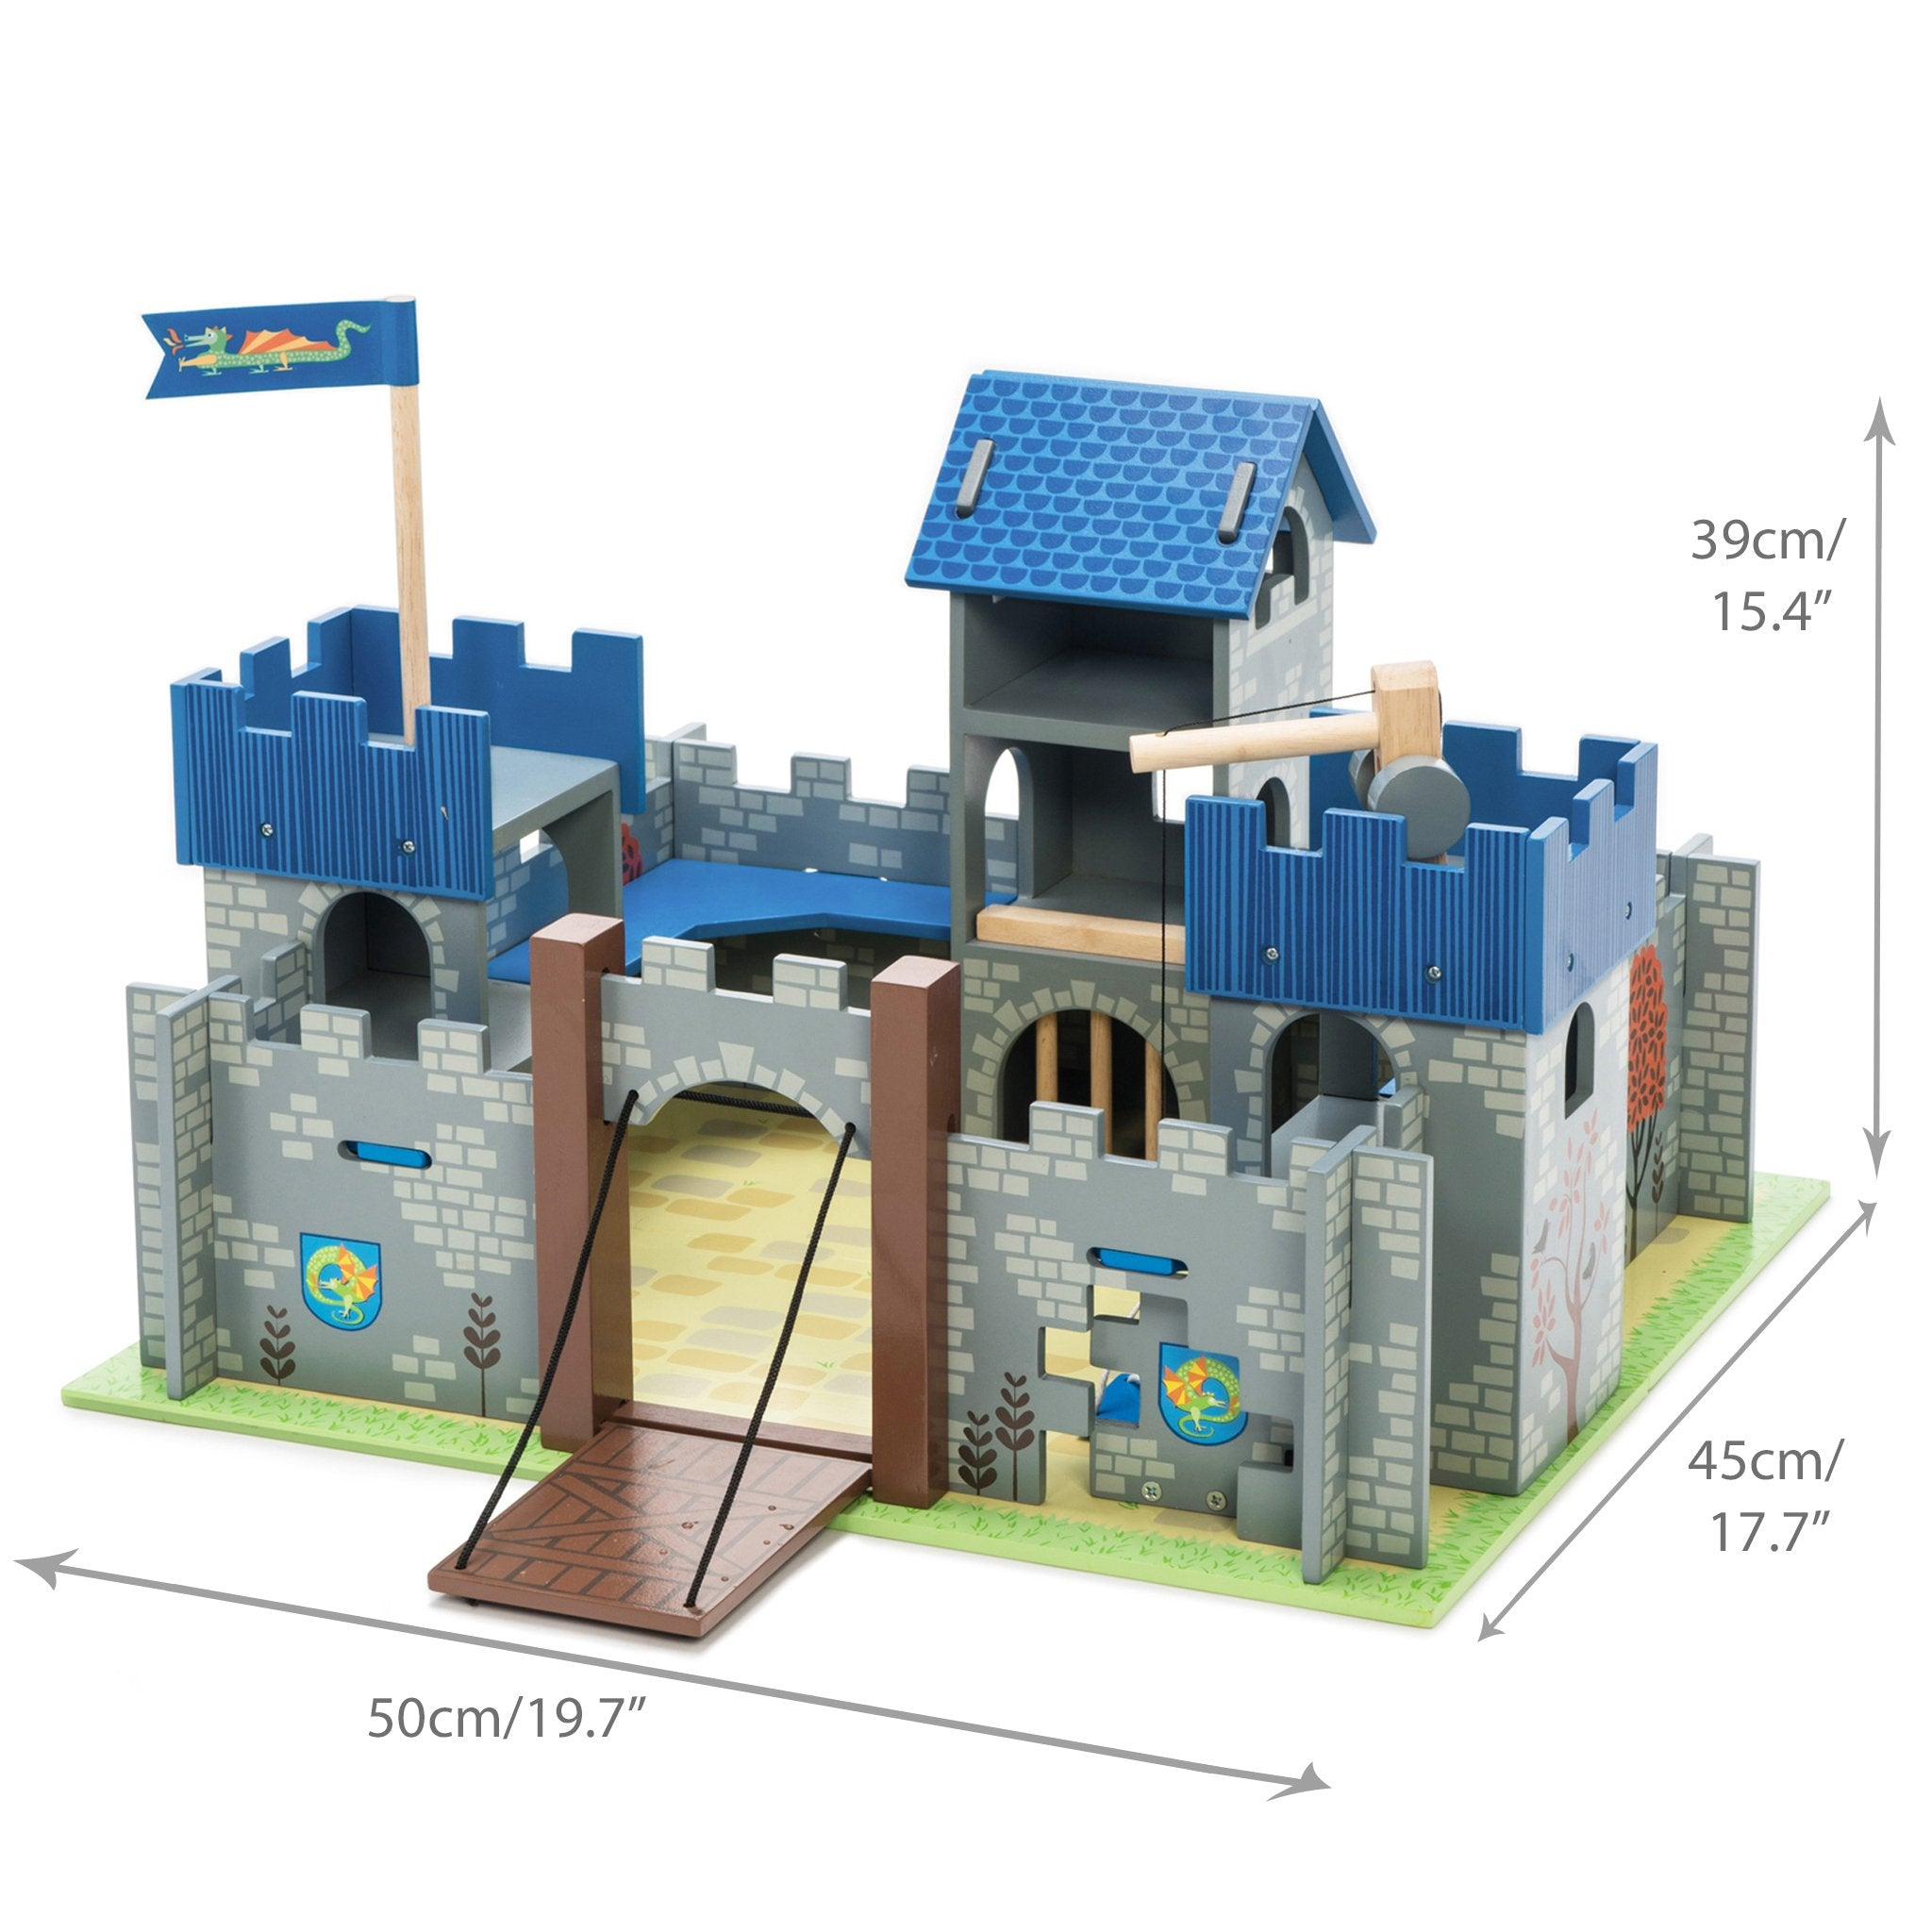 Excalibur Wooden Toy Castle For Children- Le Toy Van